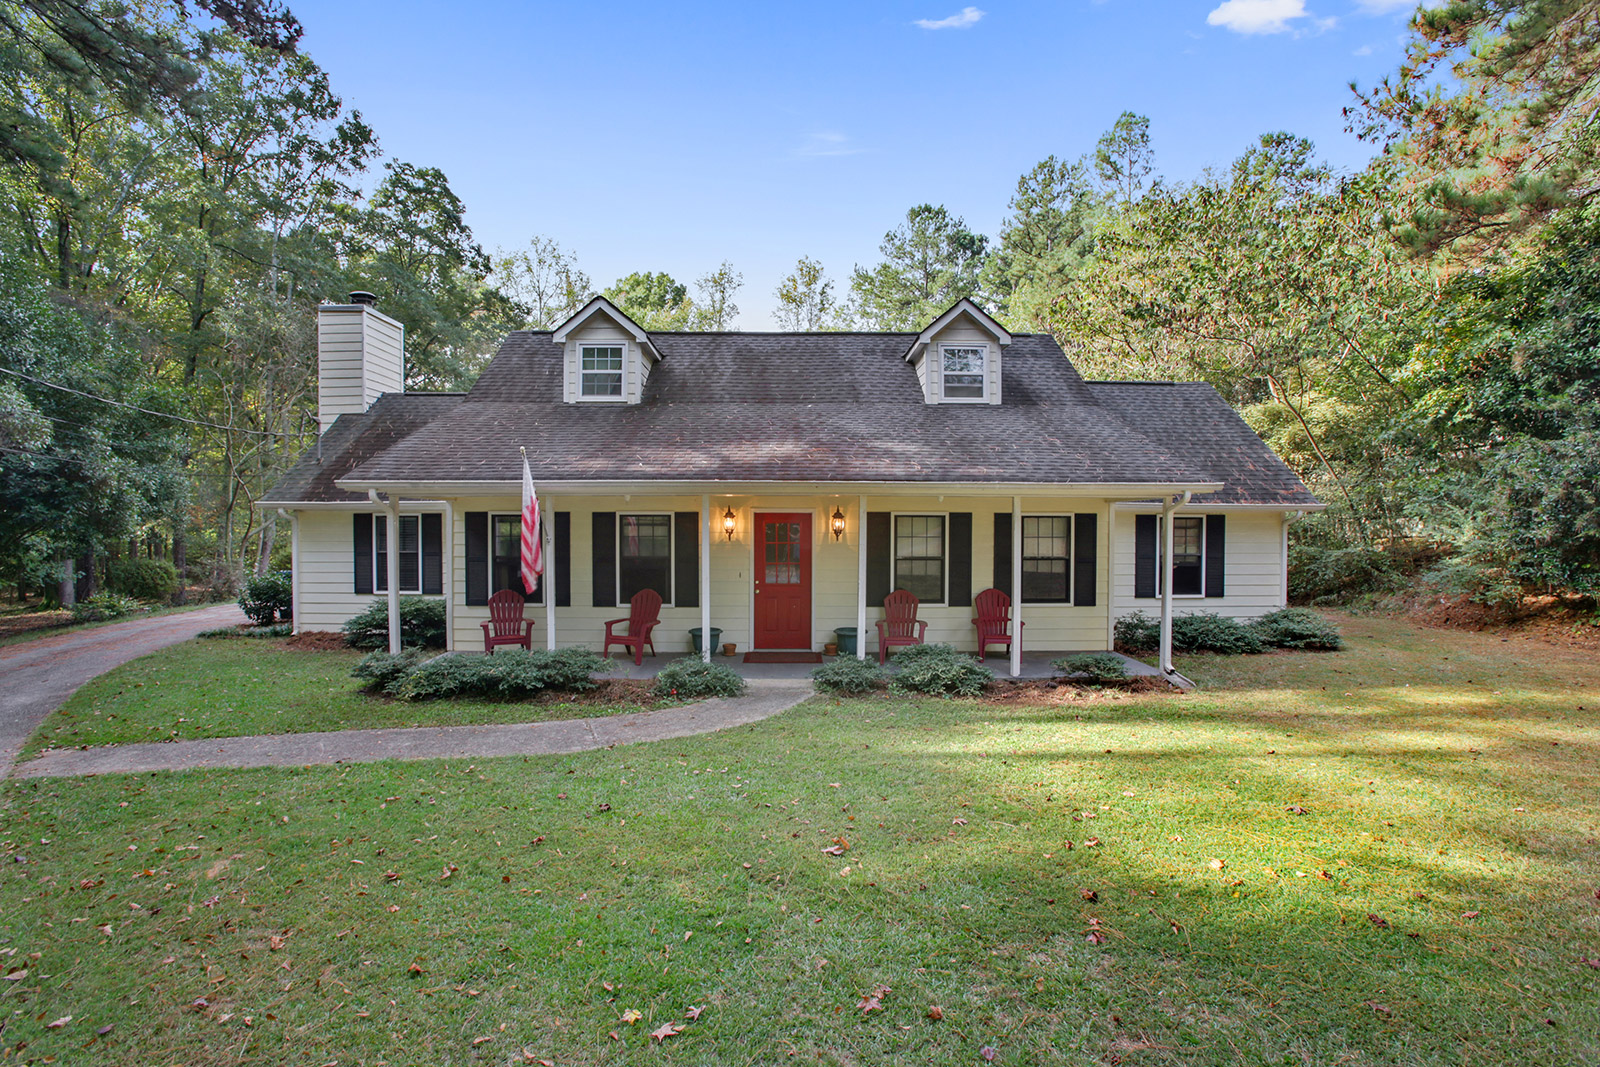 Single Family Home for Sale at Briarhill IV 405 Michael Road Tyrone, Georgia, 30290 United States